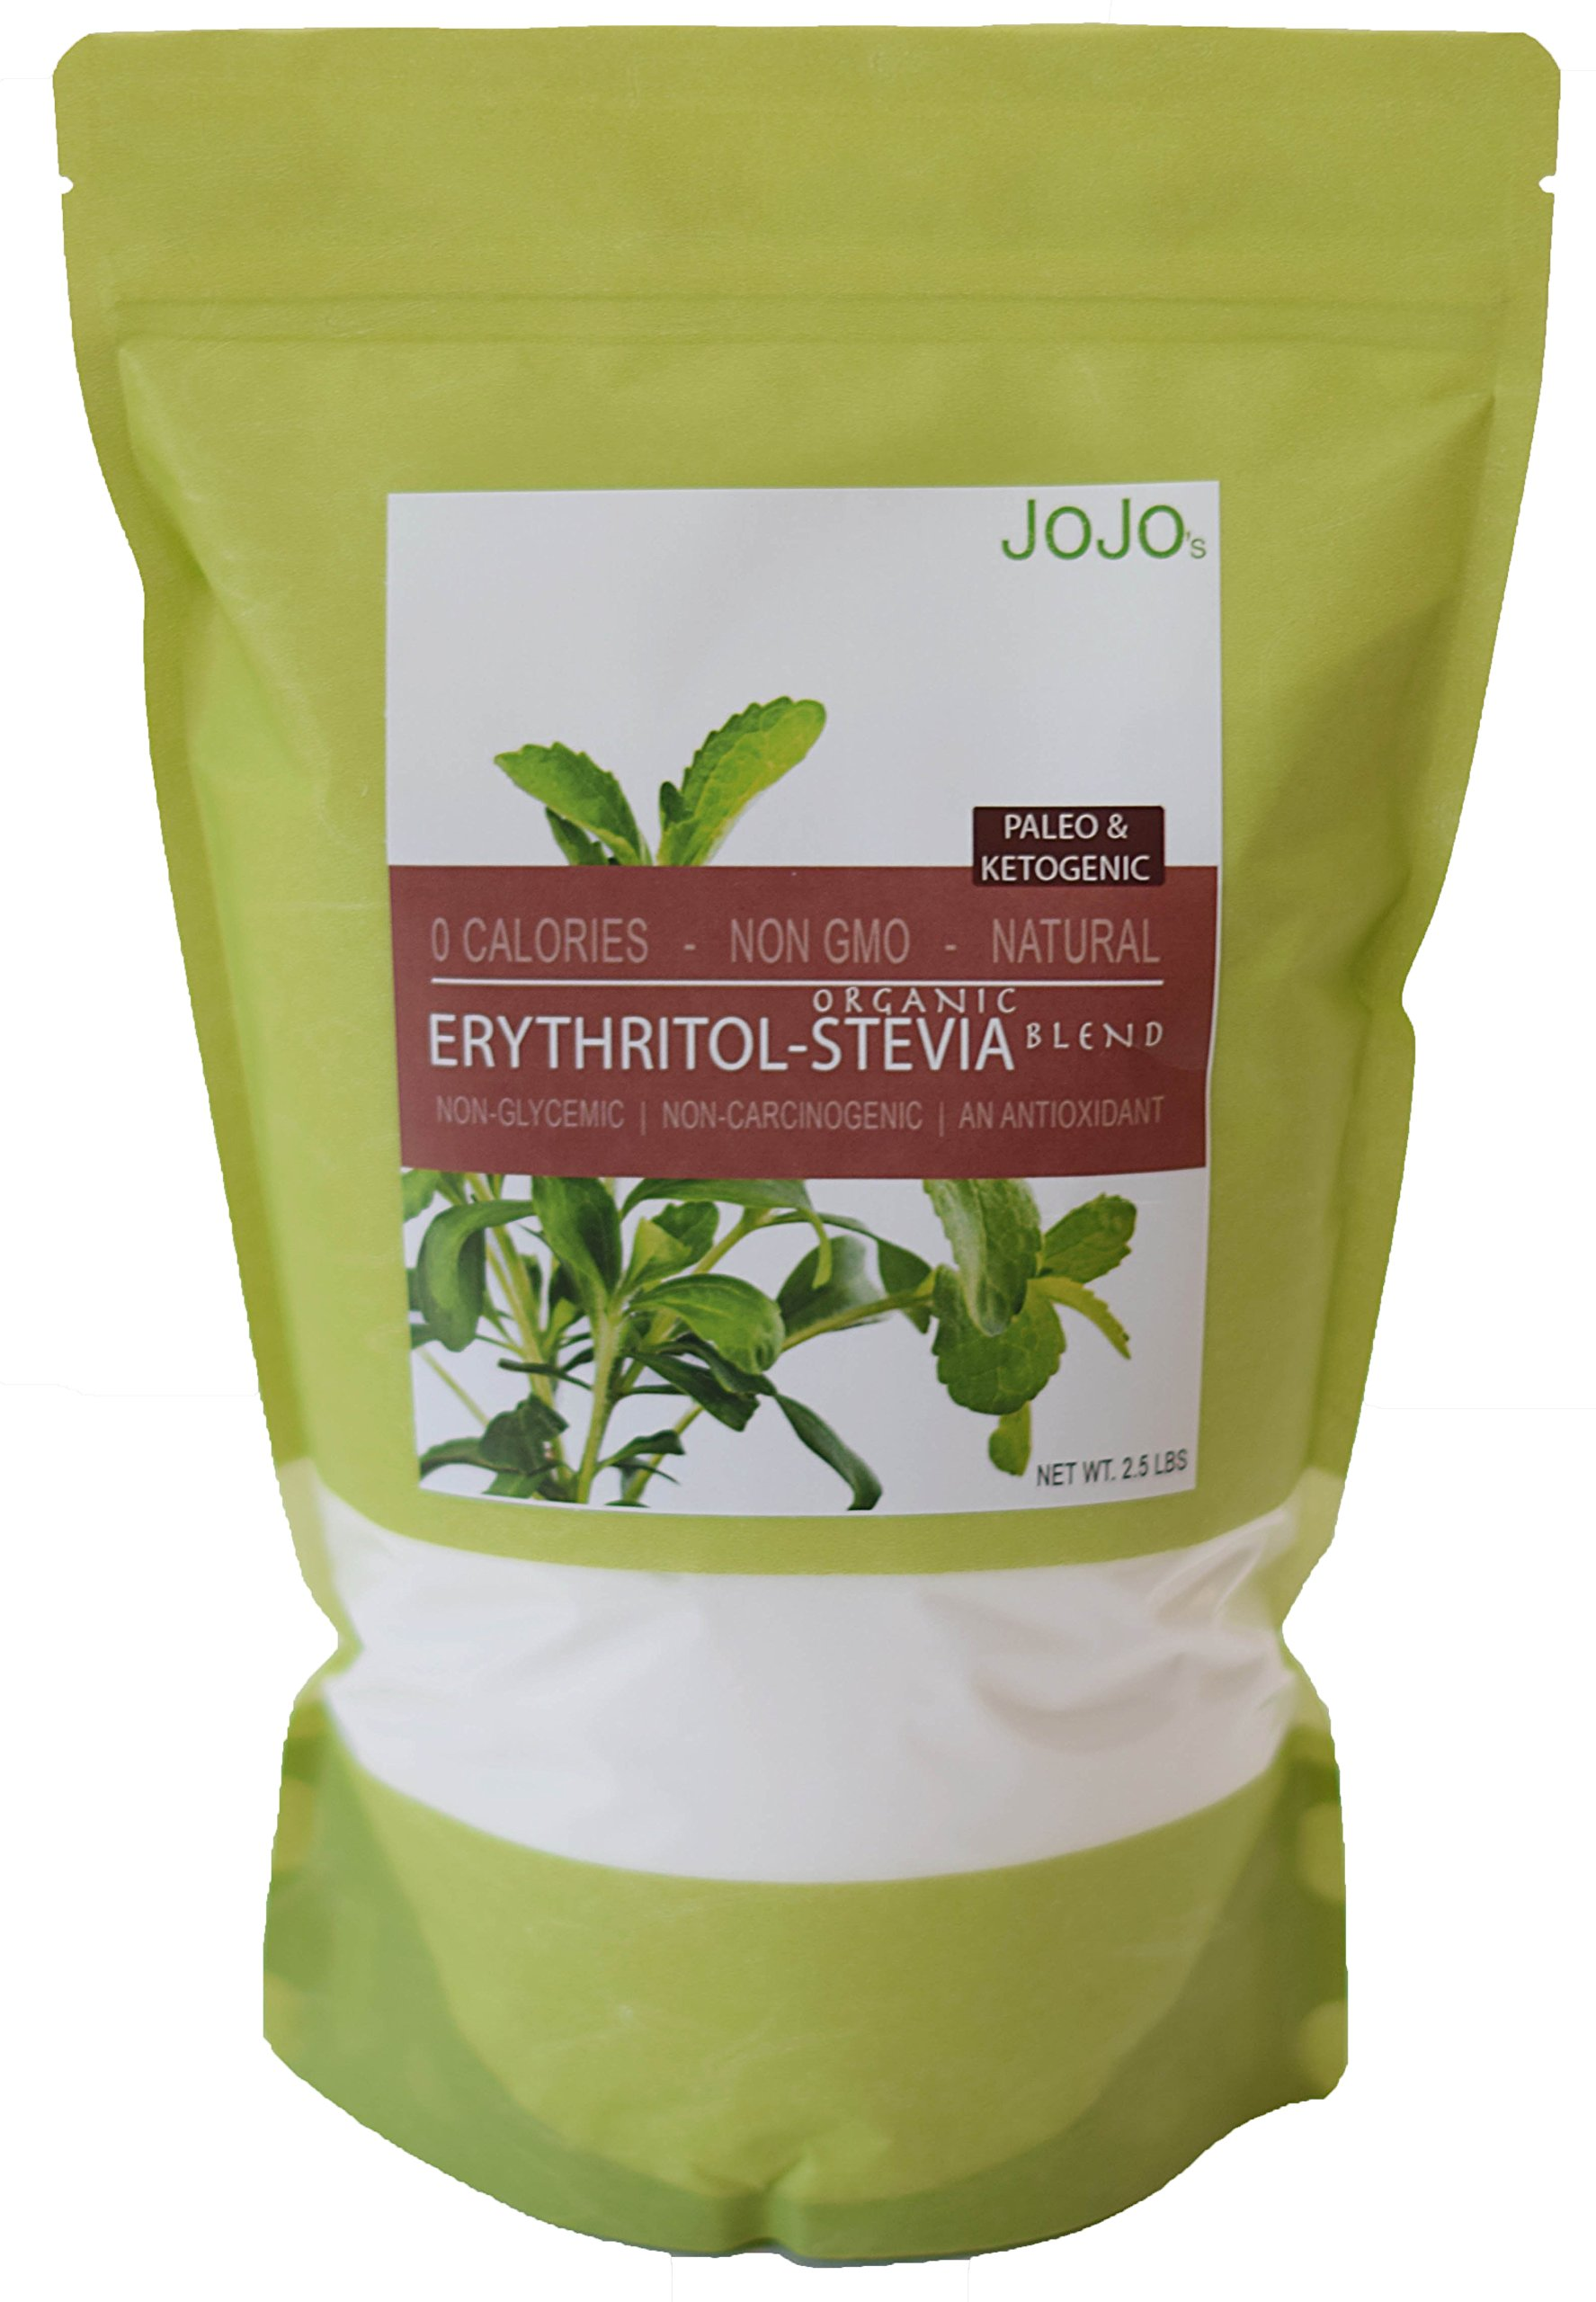 Erythritol Stevia Blend 2.5lb Organic Stevia Paleo Ketogenic Sweetener, 226 servings. Perfect for baking sugar free recipes + 5 Sugar Free Recipes Included With Your Order by JOJO's Chocolate